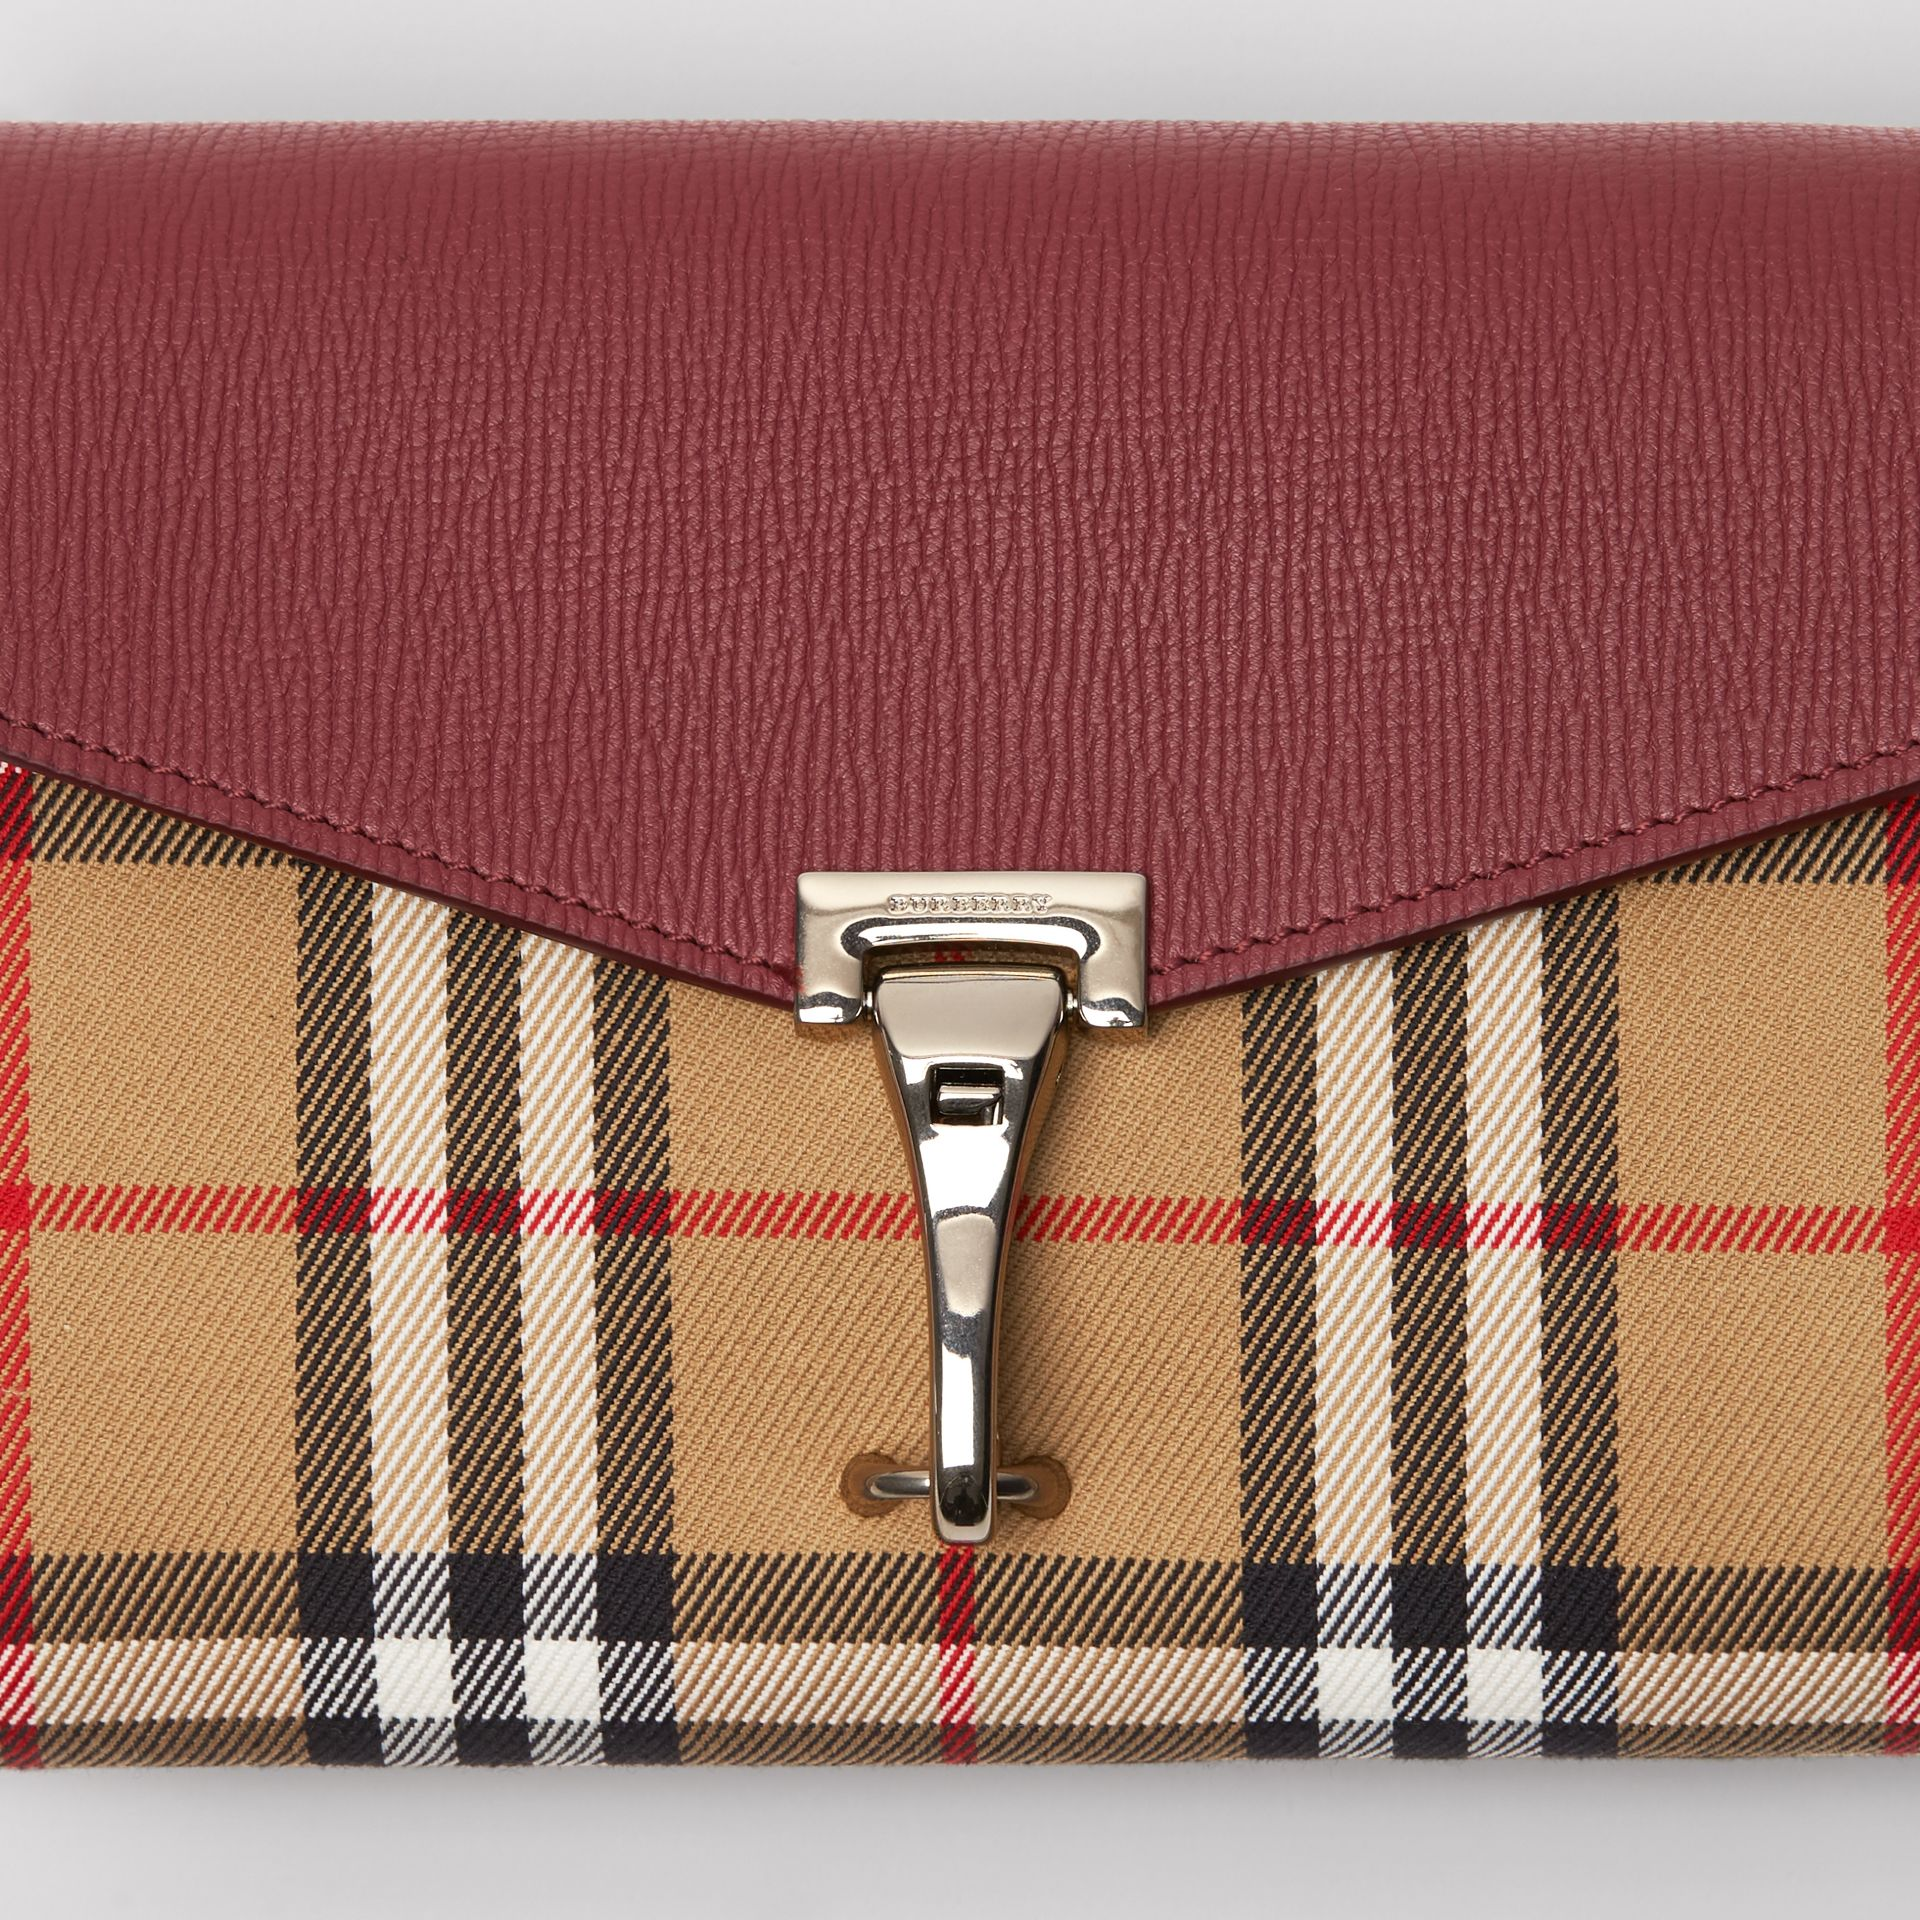 Mini Leather and Vintage Check Crossbody Bag in Crimson - Women | Burberry Hong Kong S.A.R - gallery image 1